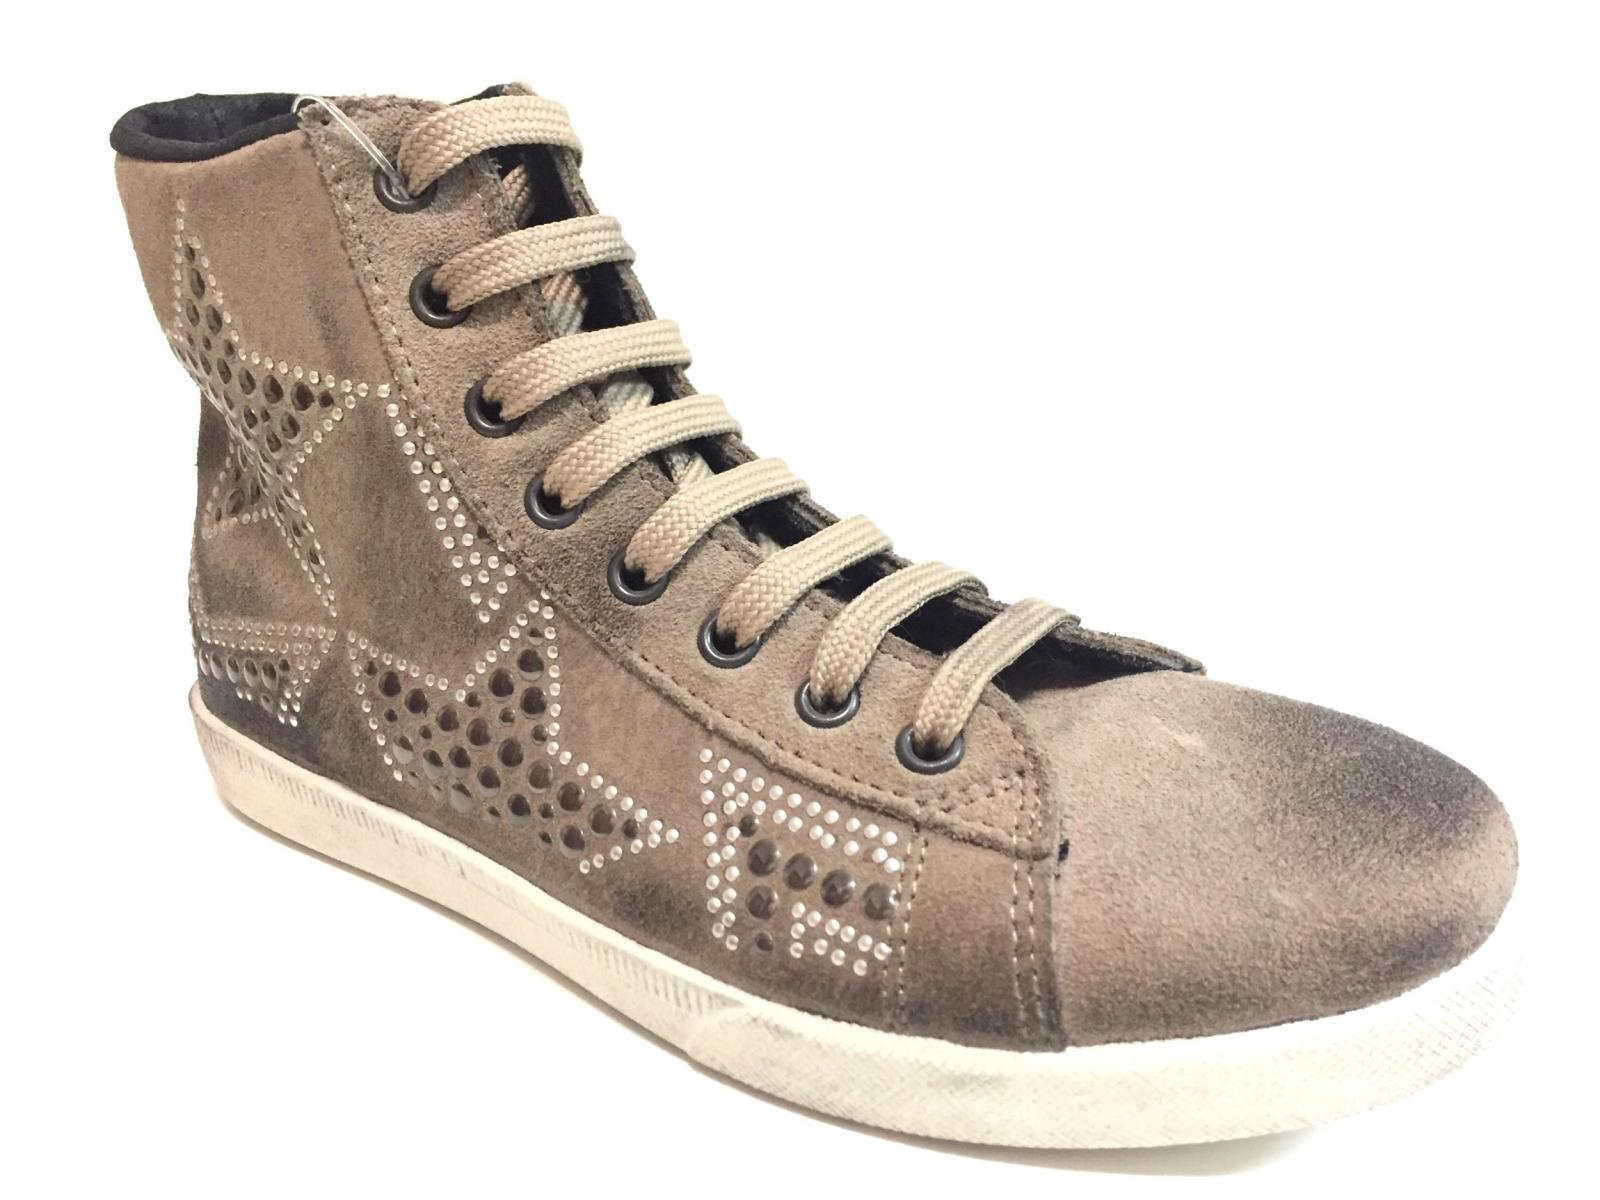 SCARPE SNEAKERS ALTE CASUAL DONNA KIOSS 133 PELLE FANGO ORIGINALE AI NEW